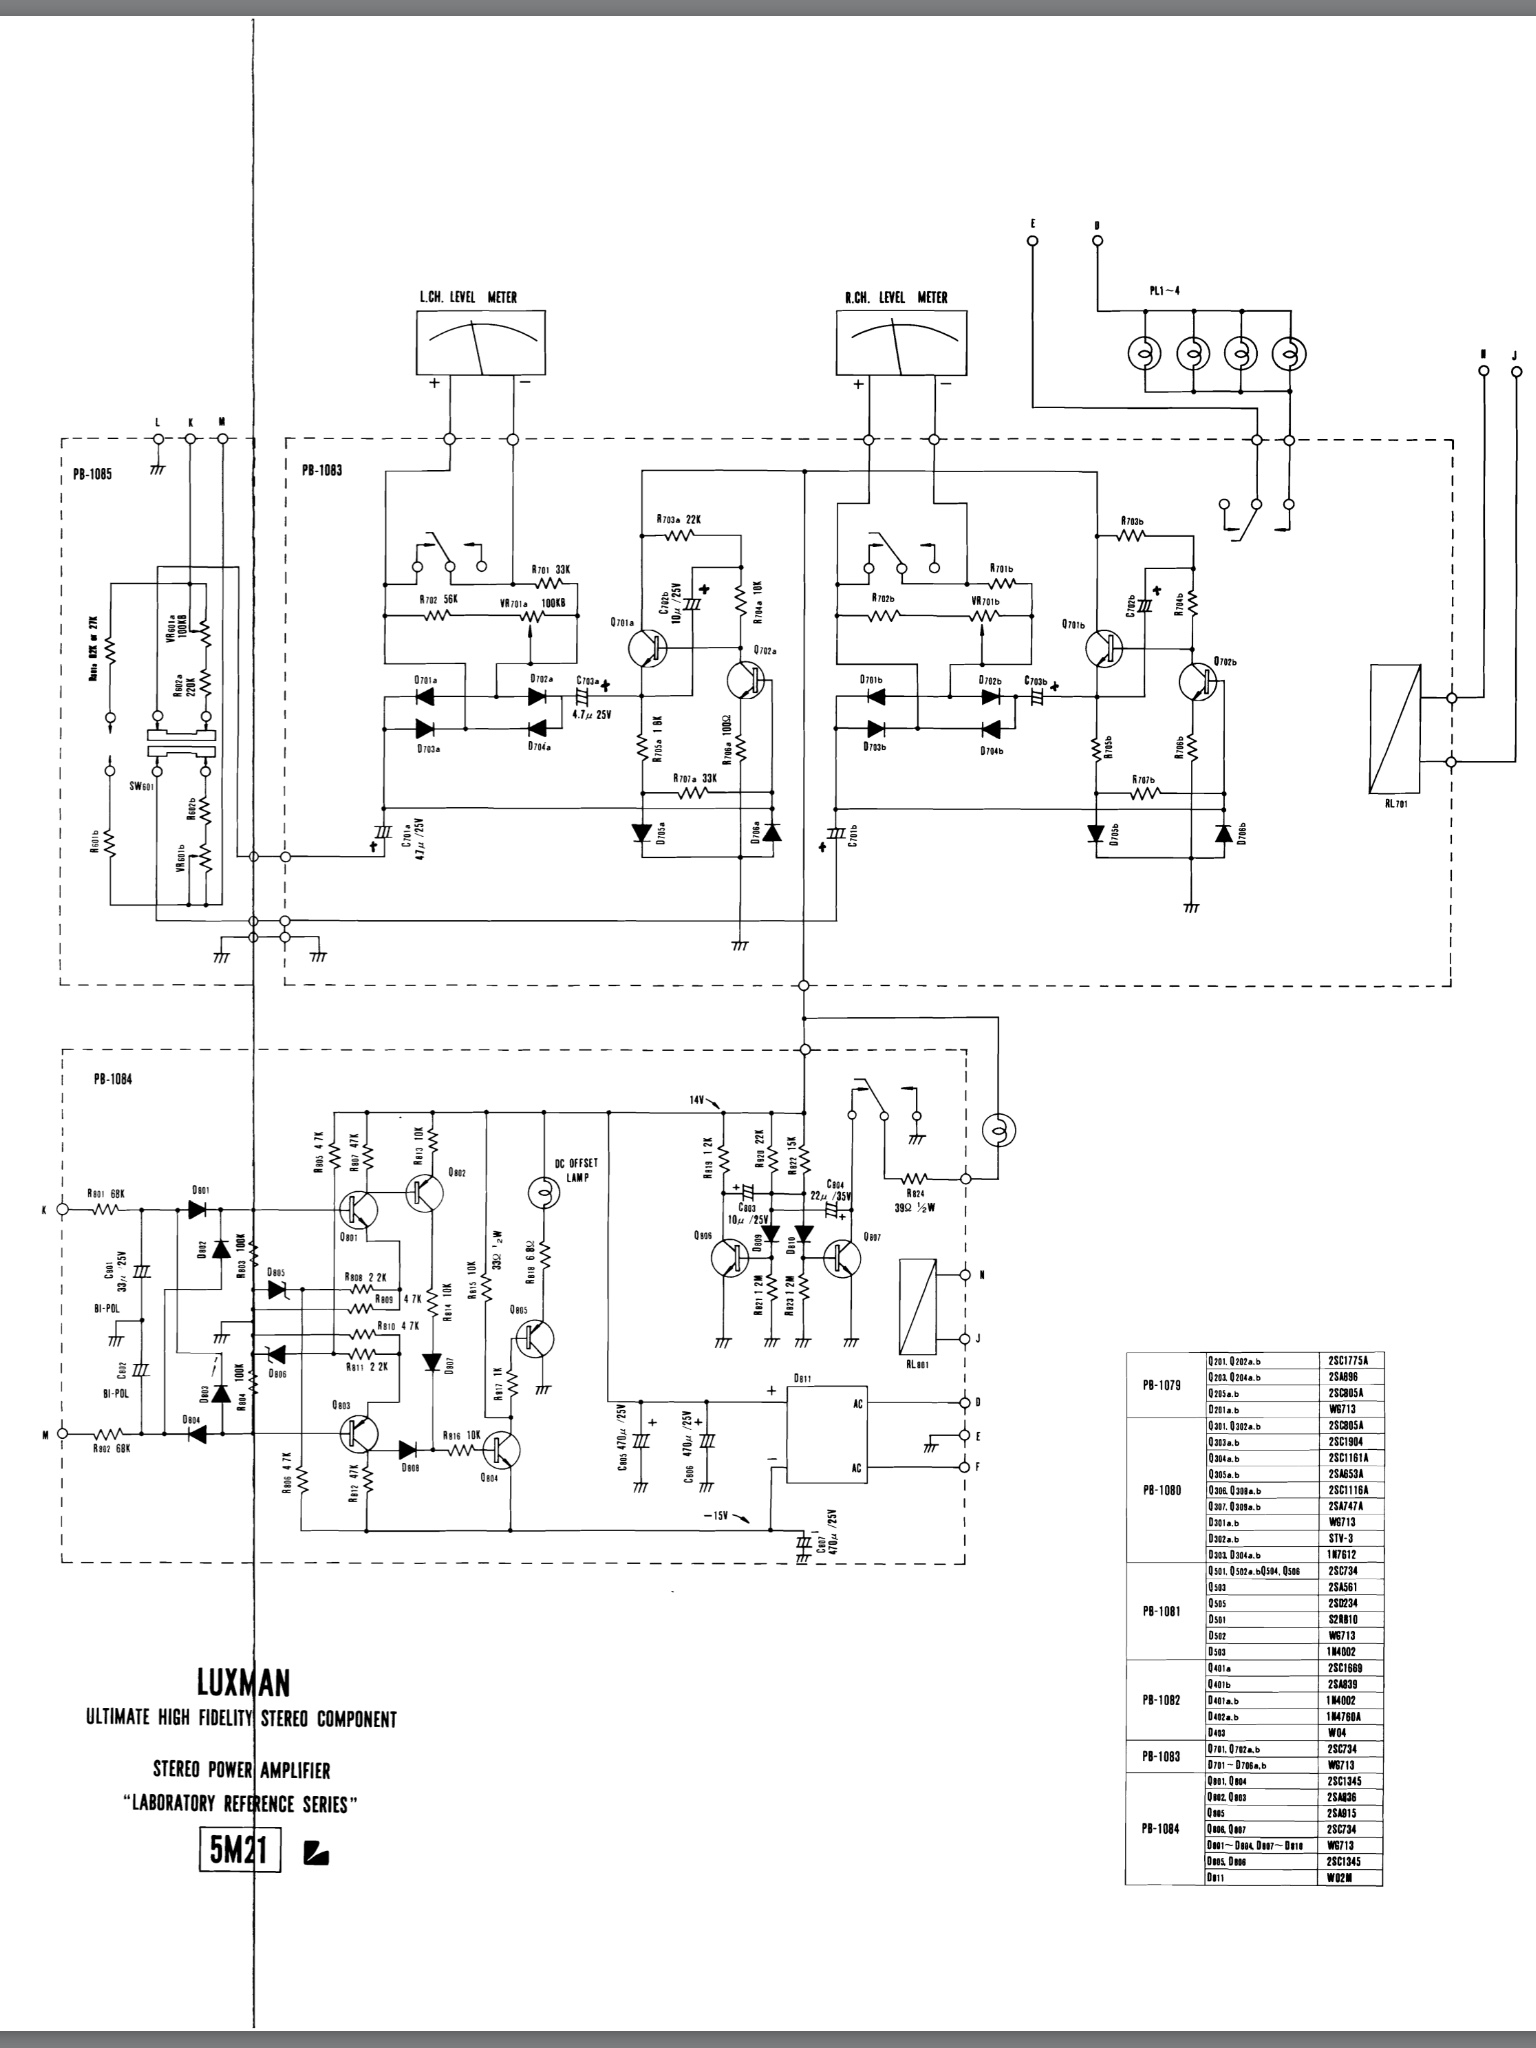 WRG-8679] Luxman Wiring Diagram on 12v diesel fuel schematics diagram, cat5 diagram, secondary ignition pickup sensor probe schematic diagram, mazda tribute cruise control harness diagram, rj45 connector diagram, mazda 6 throttle connection diagram,